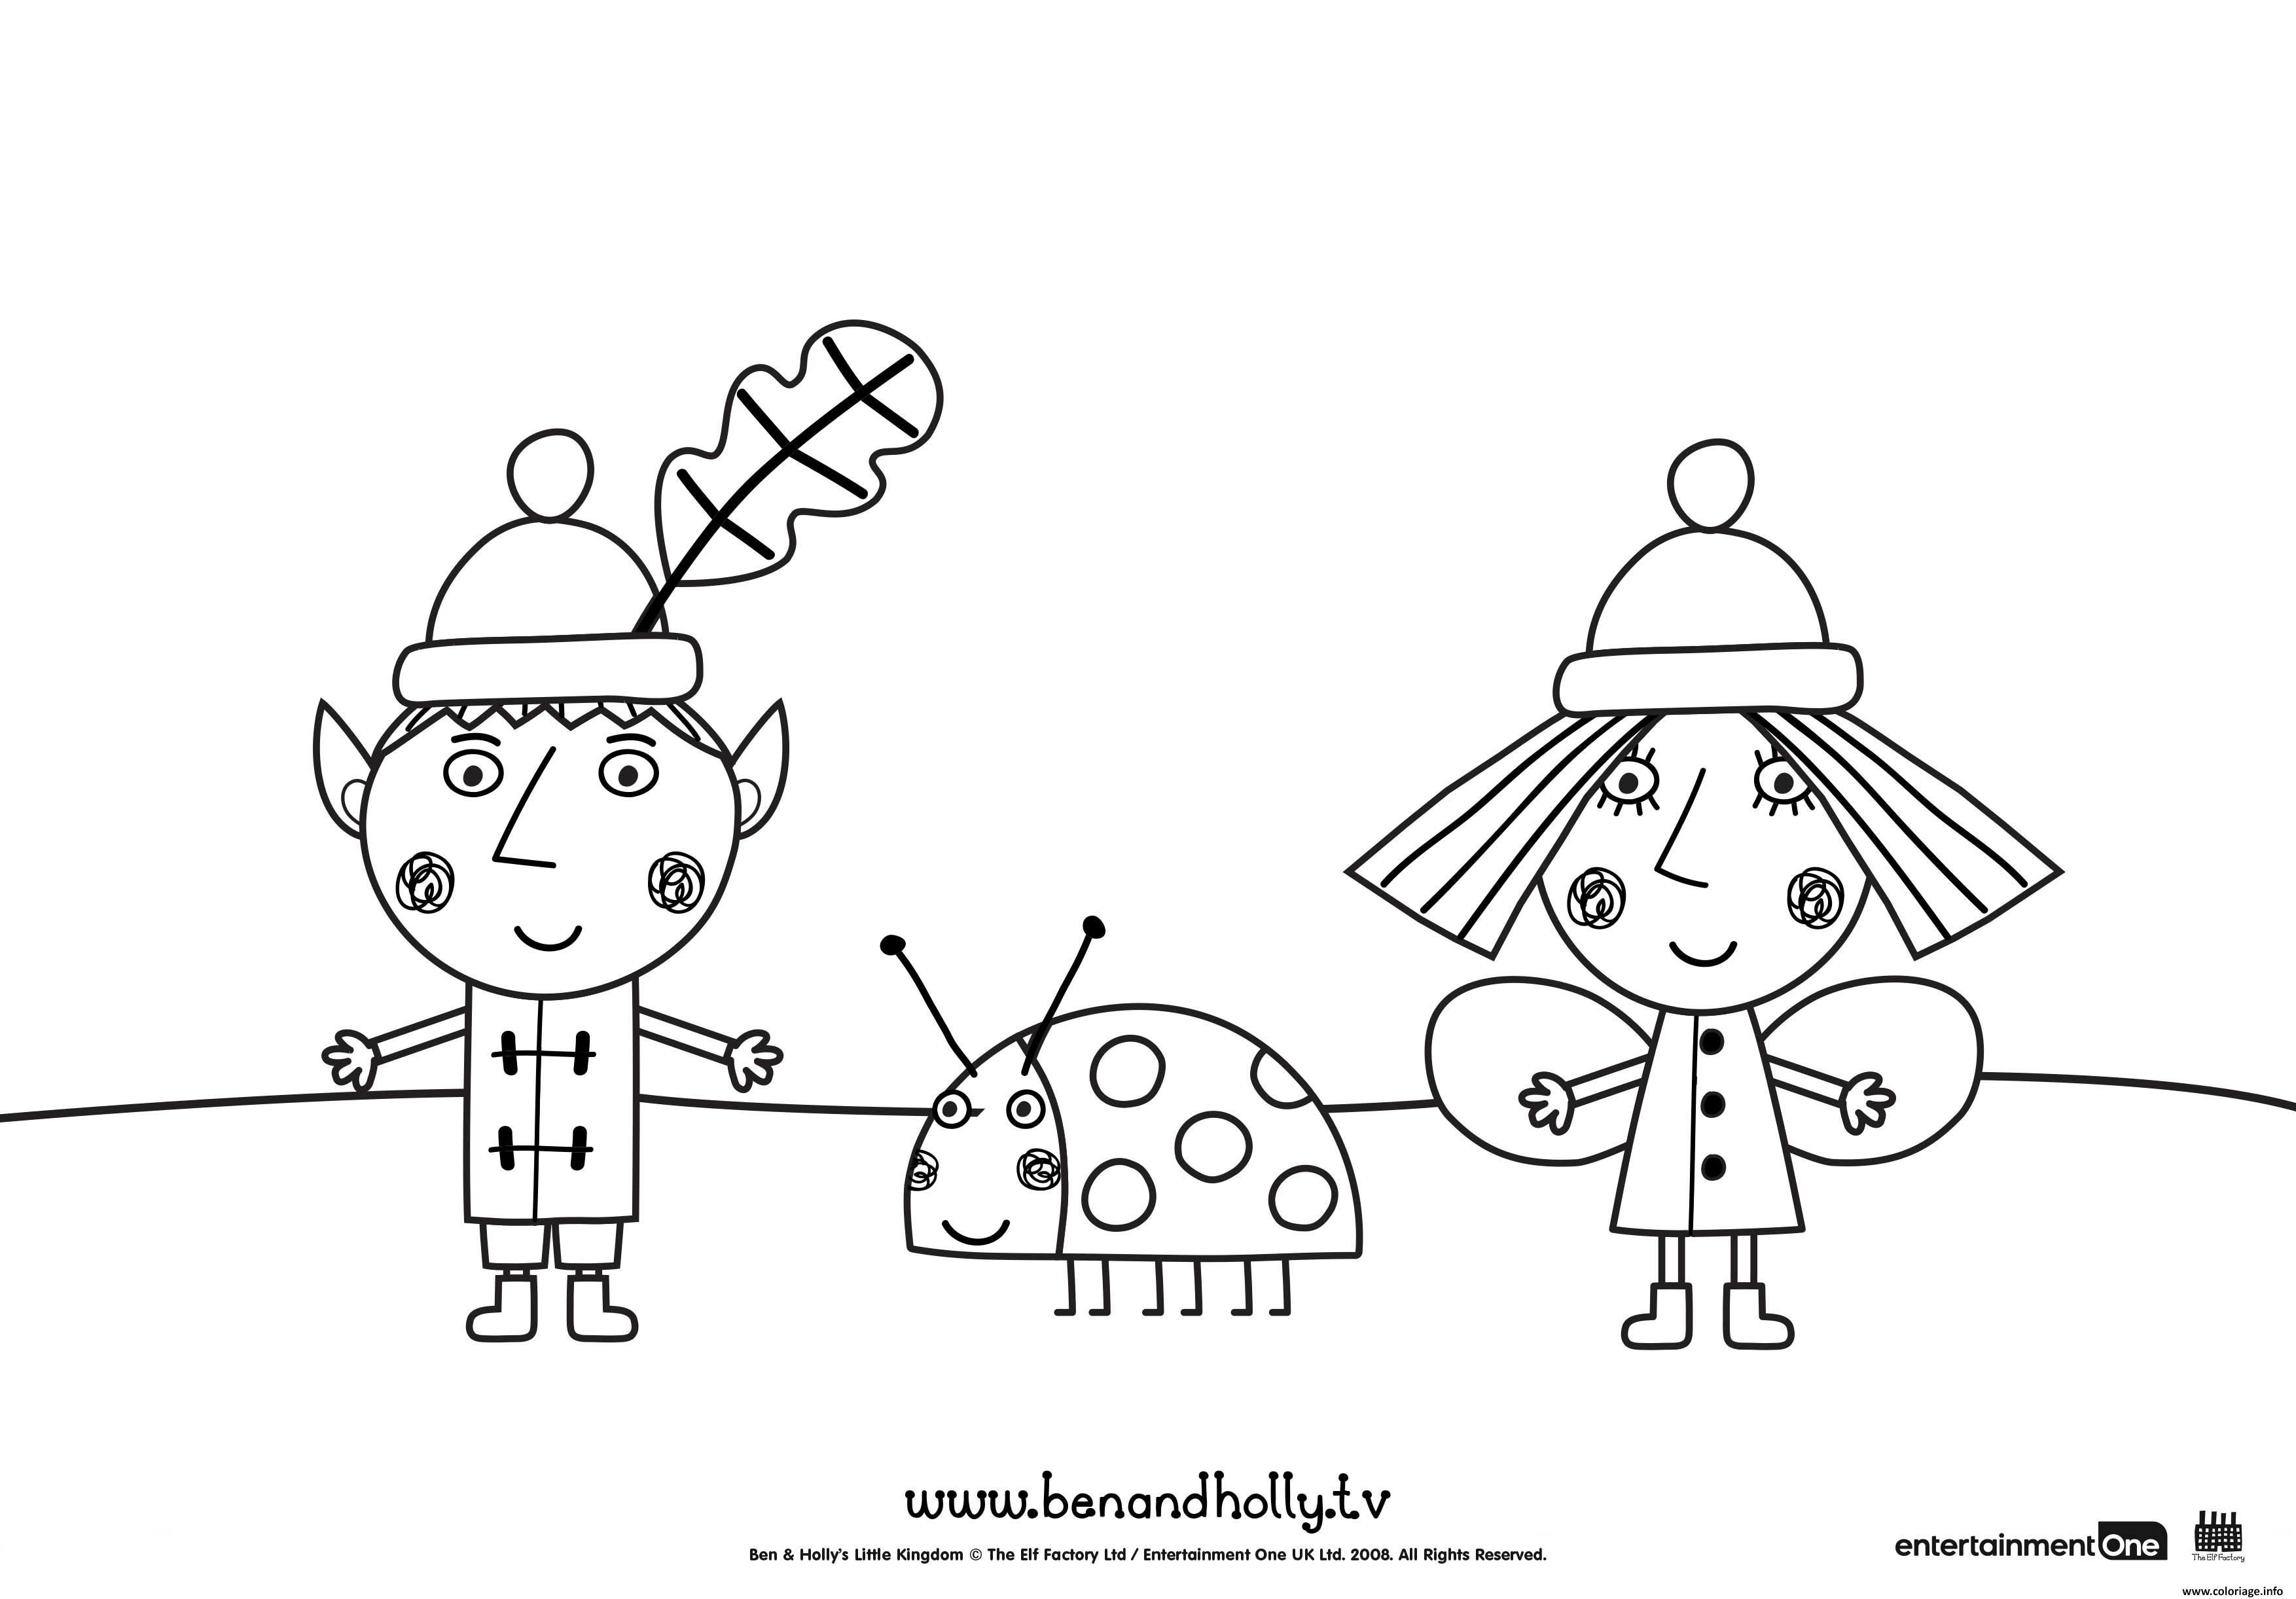 idee 8 Ben Et Holly Coloriage  Ben and holly party ideas, Kids